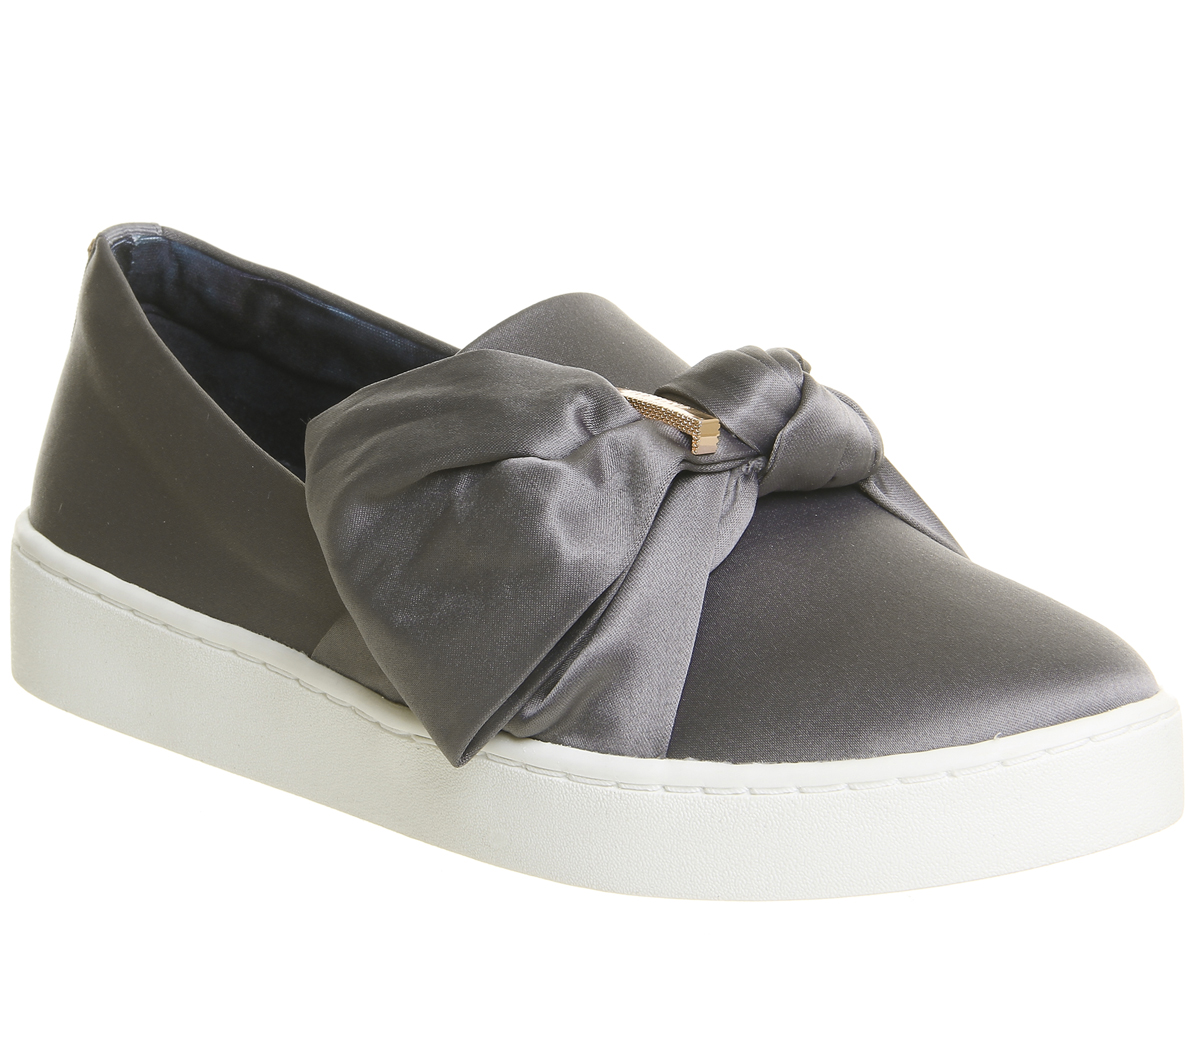 4853d5a5954a Image is loading Womens-Ted-Baker-Deyor-Bow-Sneakers-GREY-SATIN-